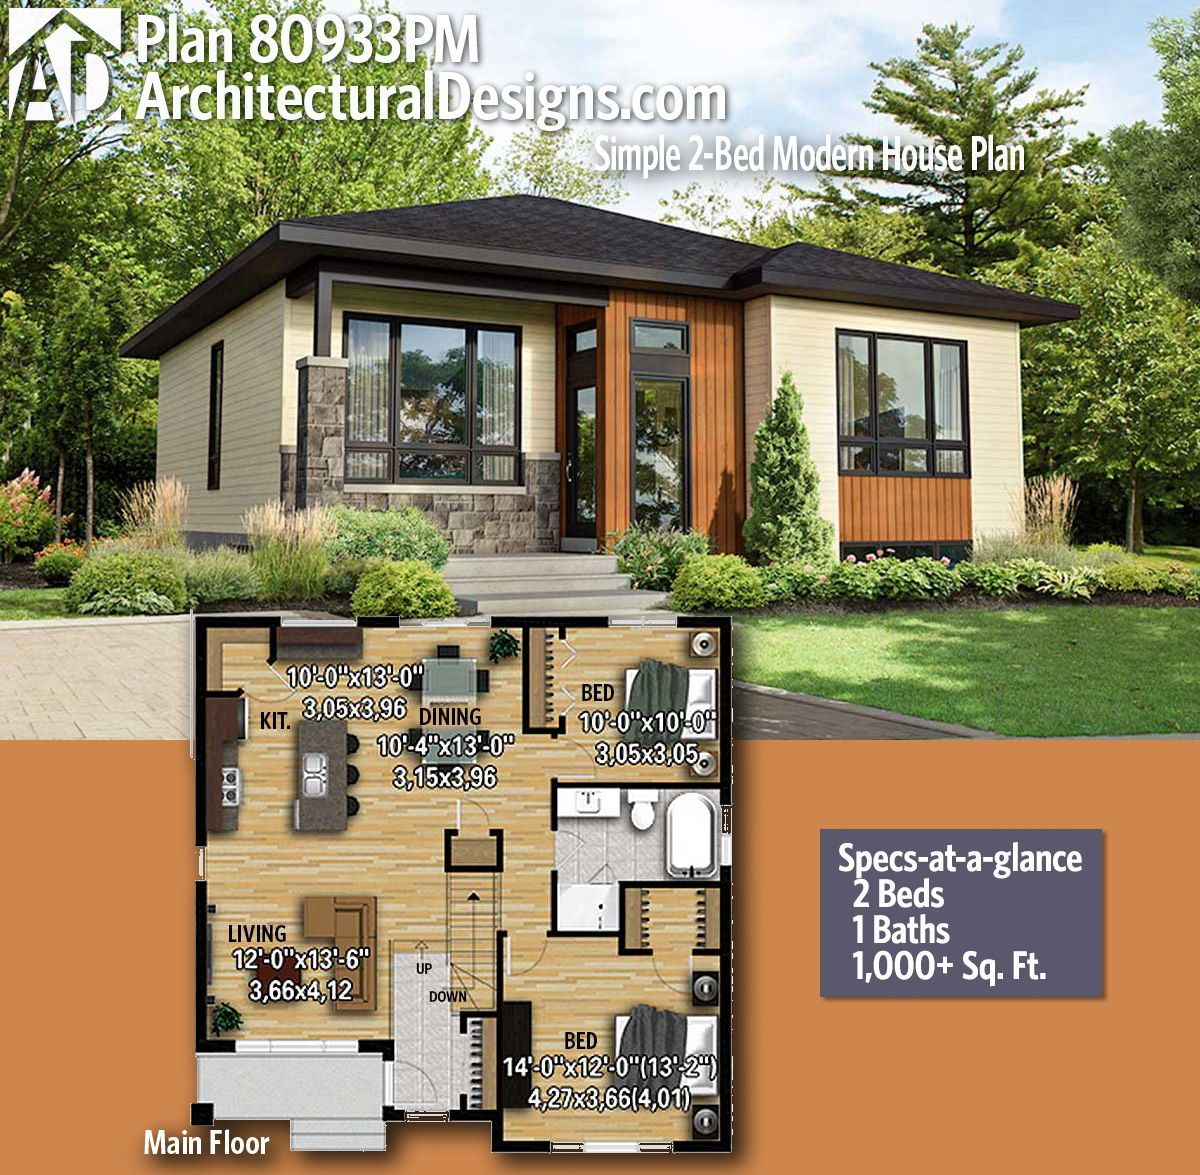 Architectural designs modern house plan pm gives you bedrooms baths and sq ft ready when are where do want to build also rh pinterest